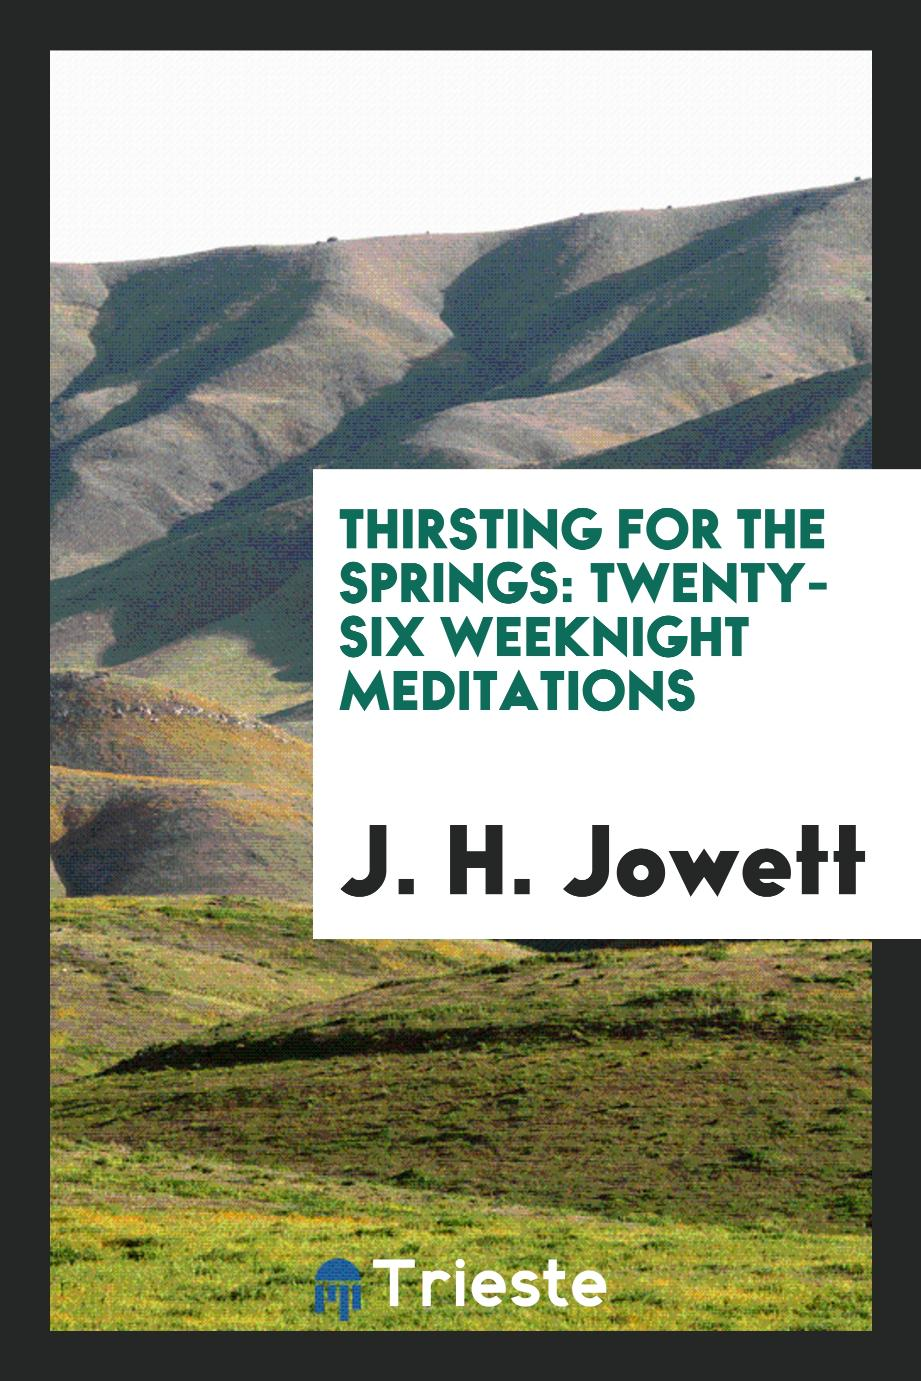 Thirsting for the Springs: Twenty-Six Weeknight Meditations